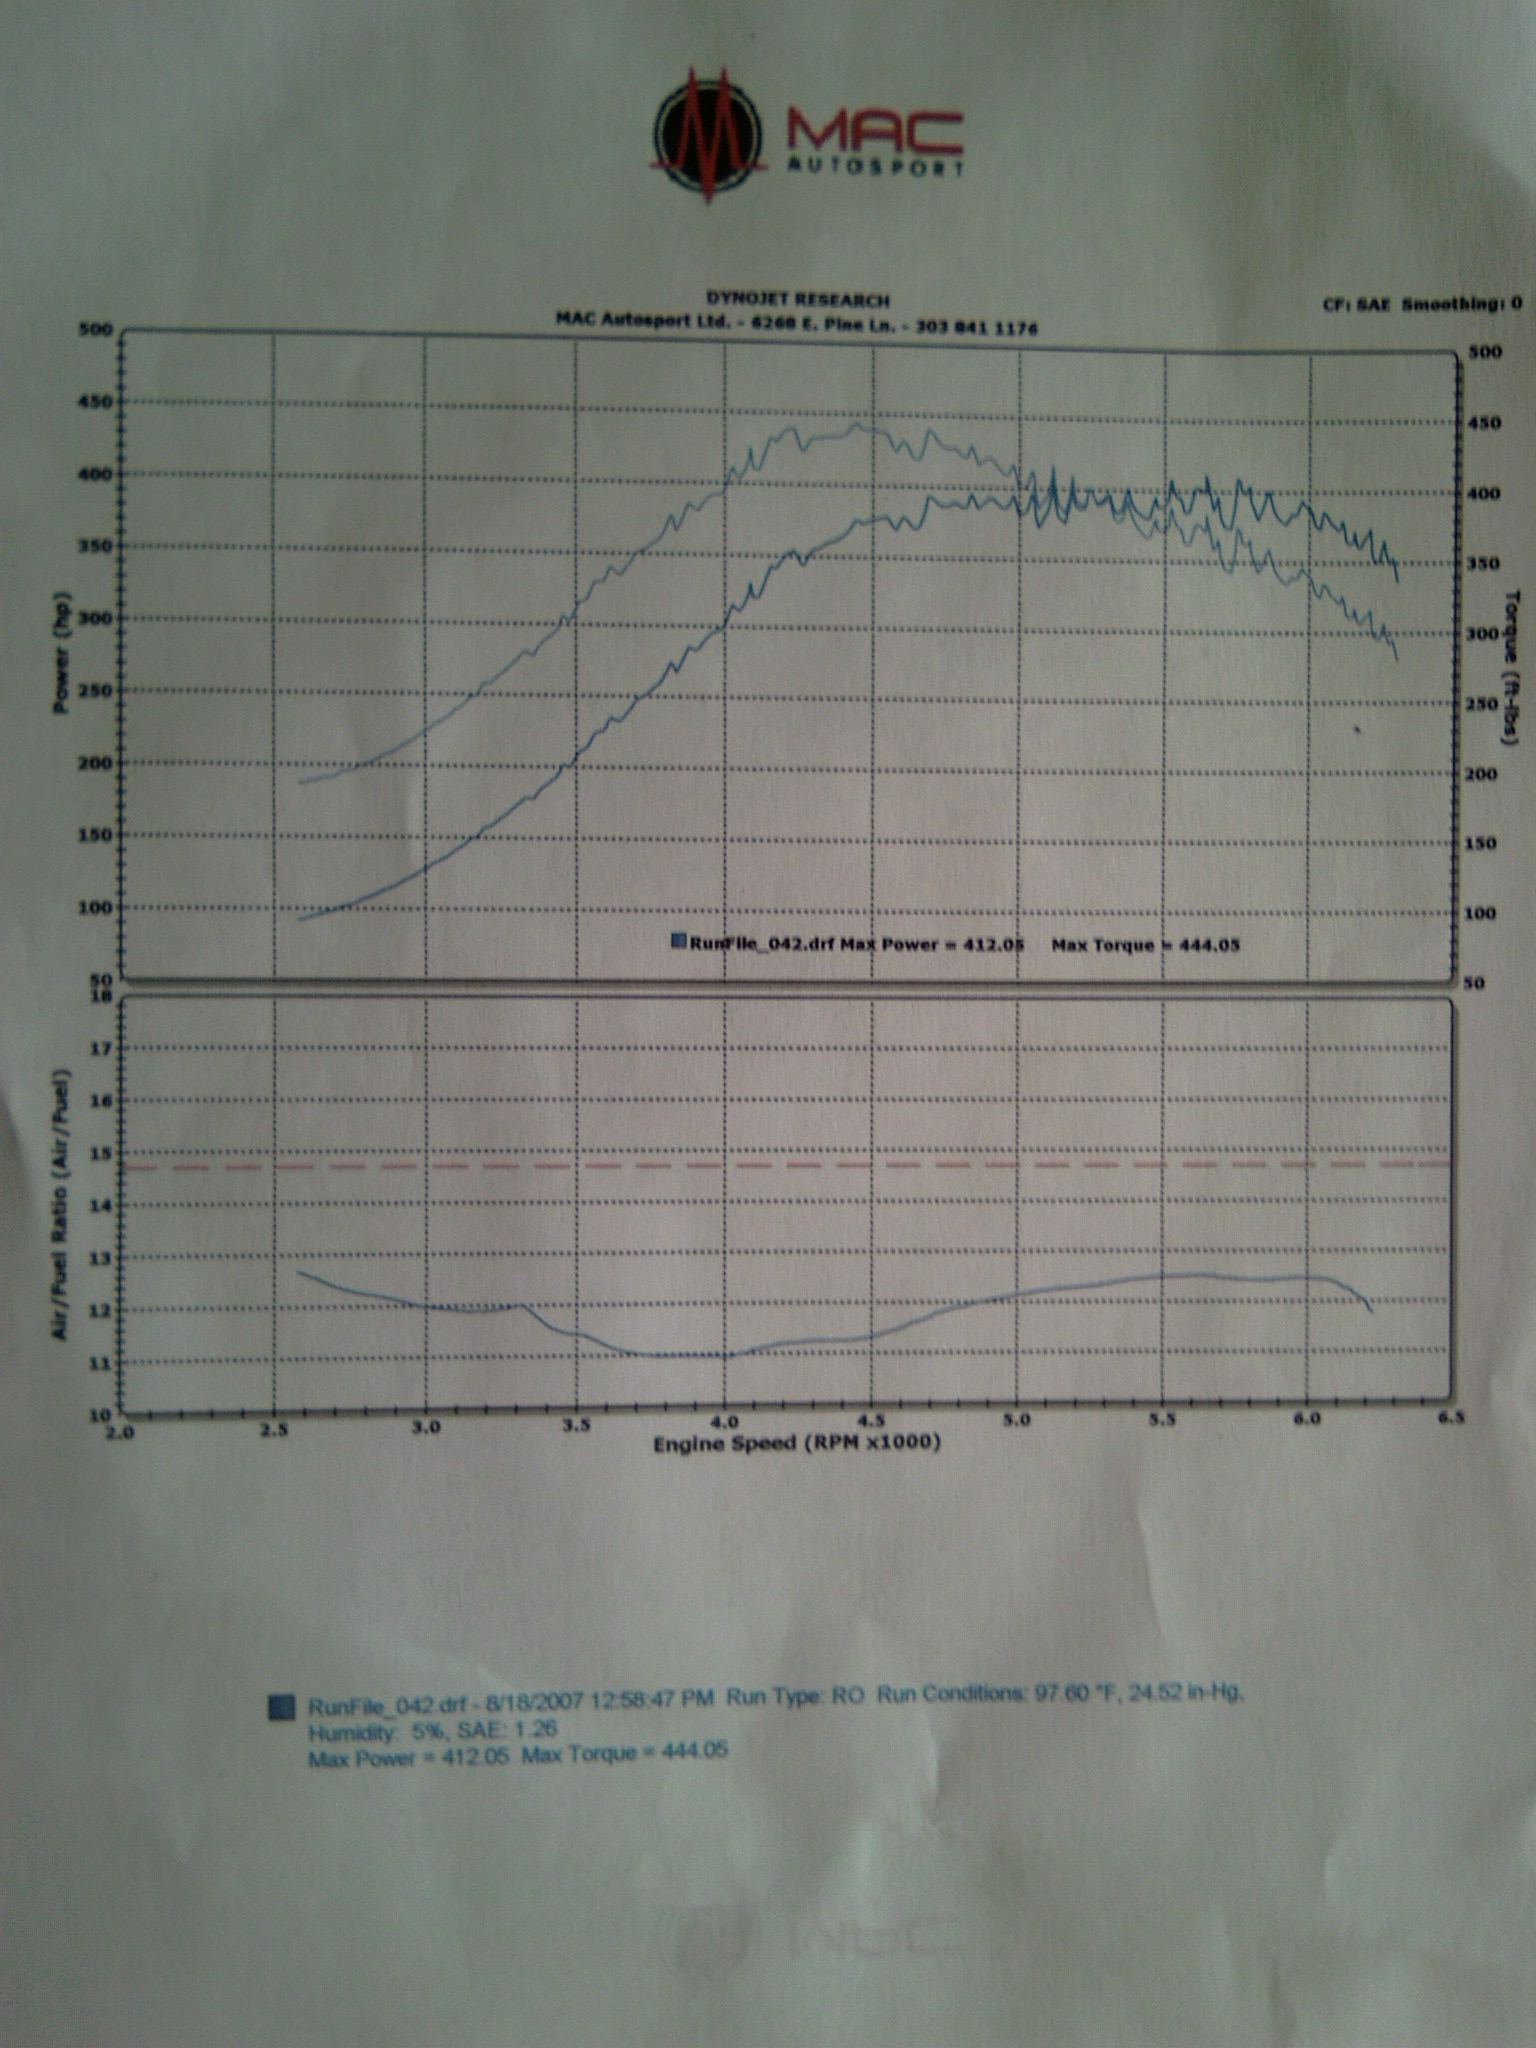 2005 Dodge Neon SRT-4 ACR Dyno Results Graph